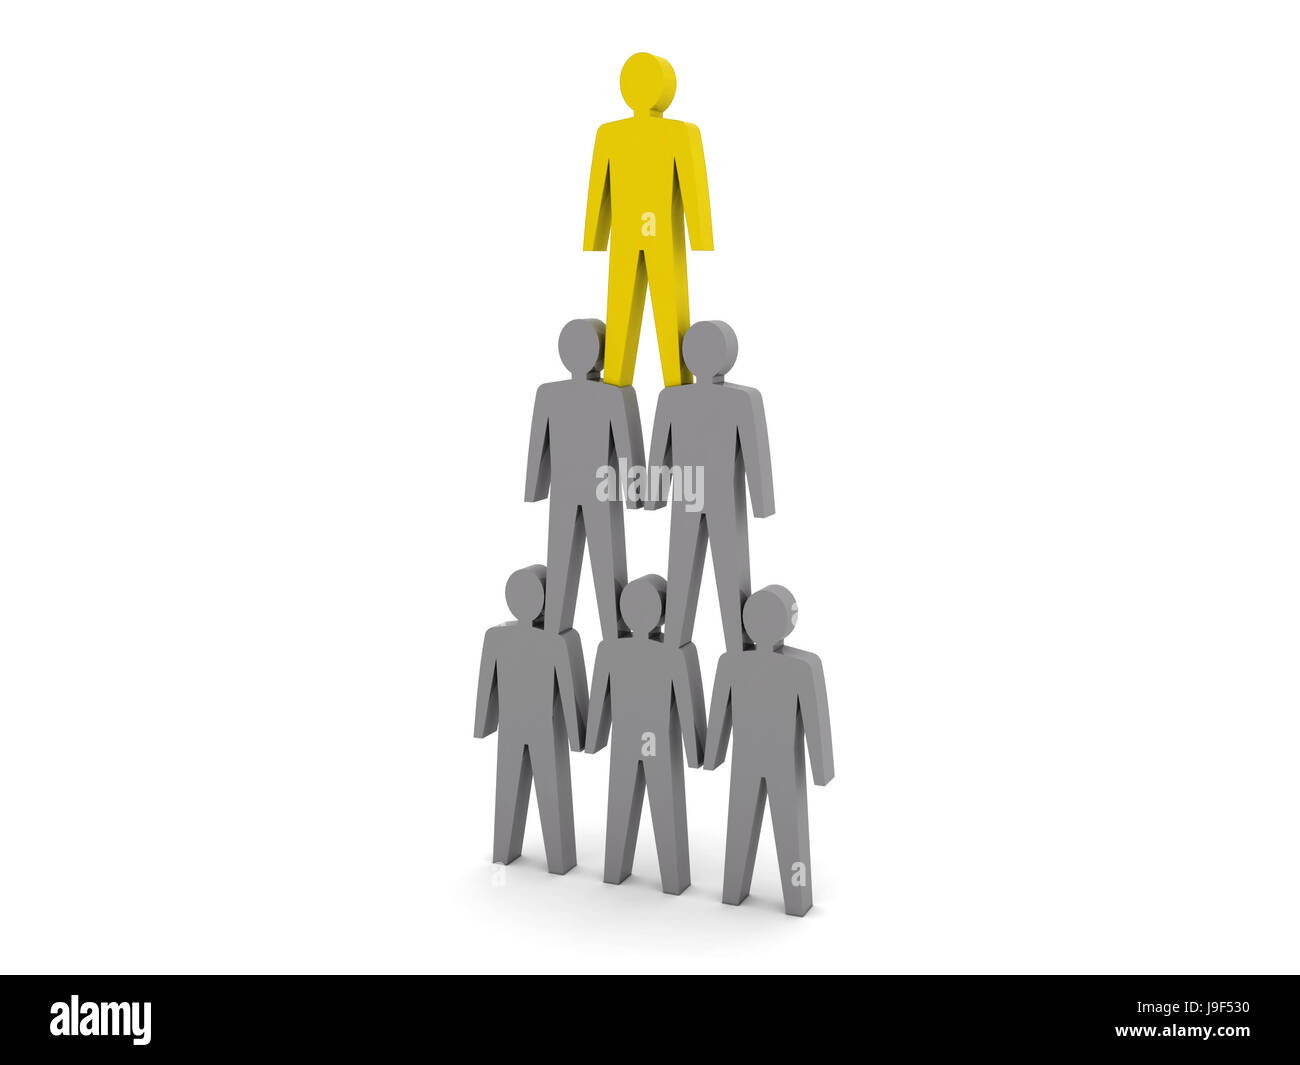 Human pyramid. Team hierarchy. Company boss. Concept 3D illustration - Stock Image